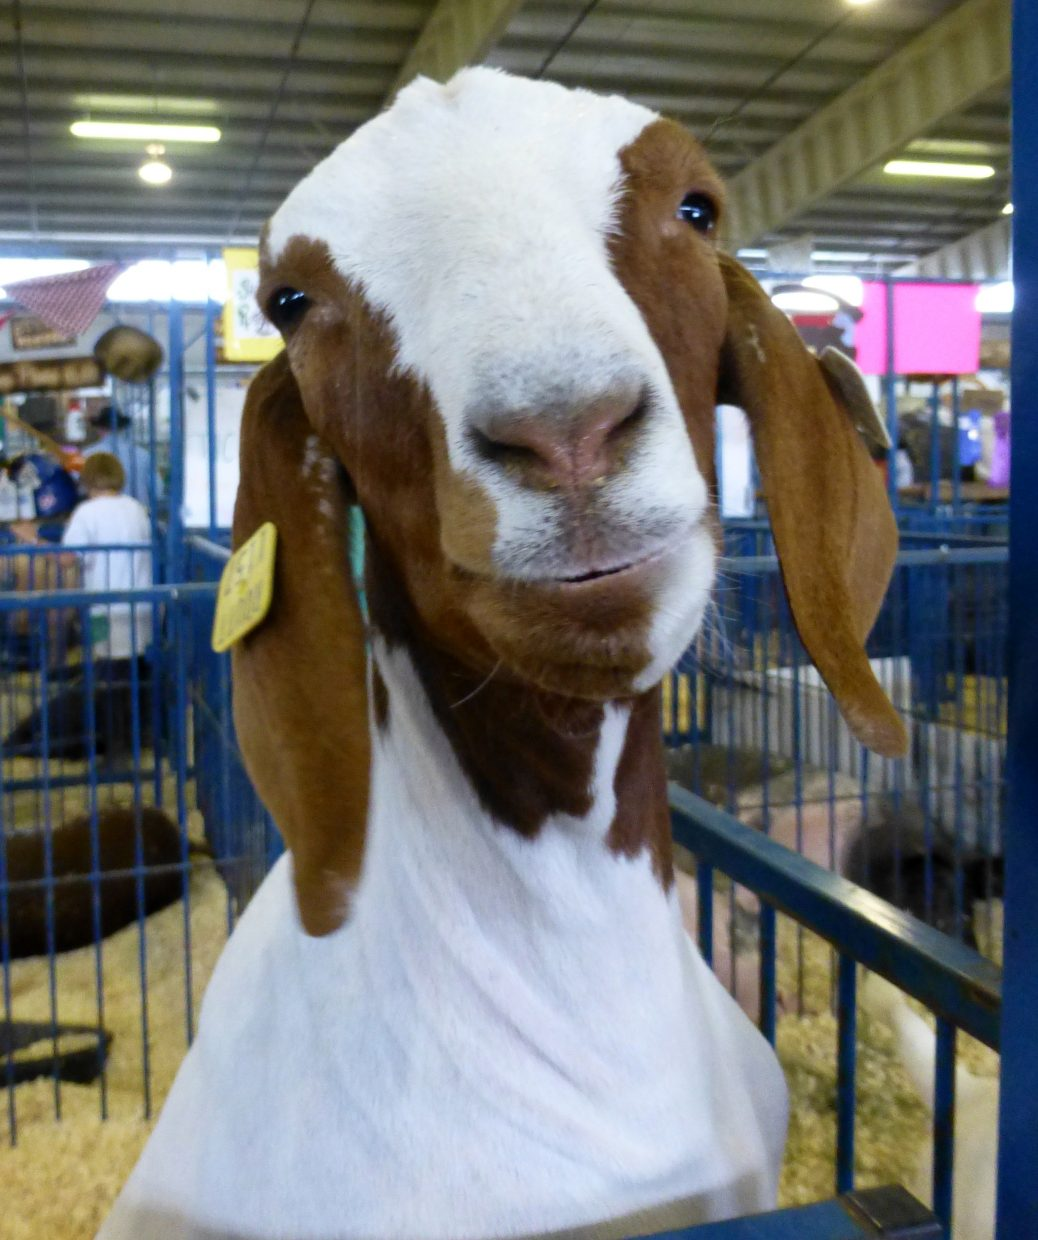 Routt County Fair. Submitted by: Gail Hanley